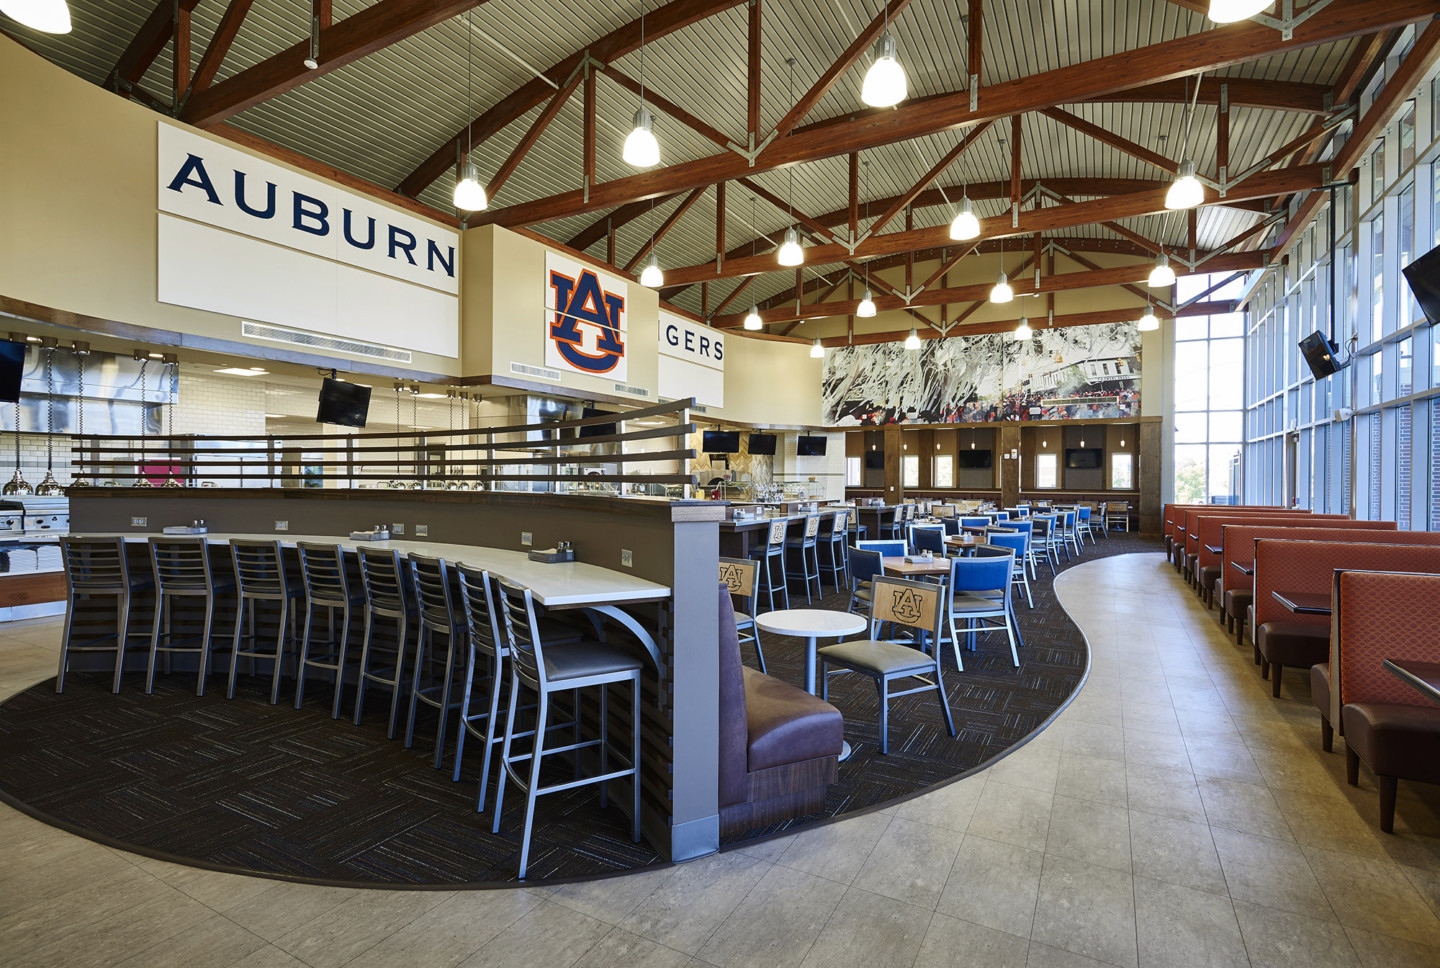 AUBURN WELLNESS KITCHEN ATHLETIC DINING VIEW 05